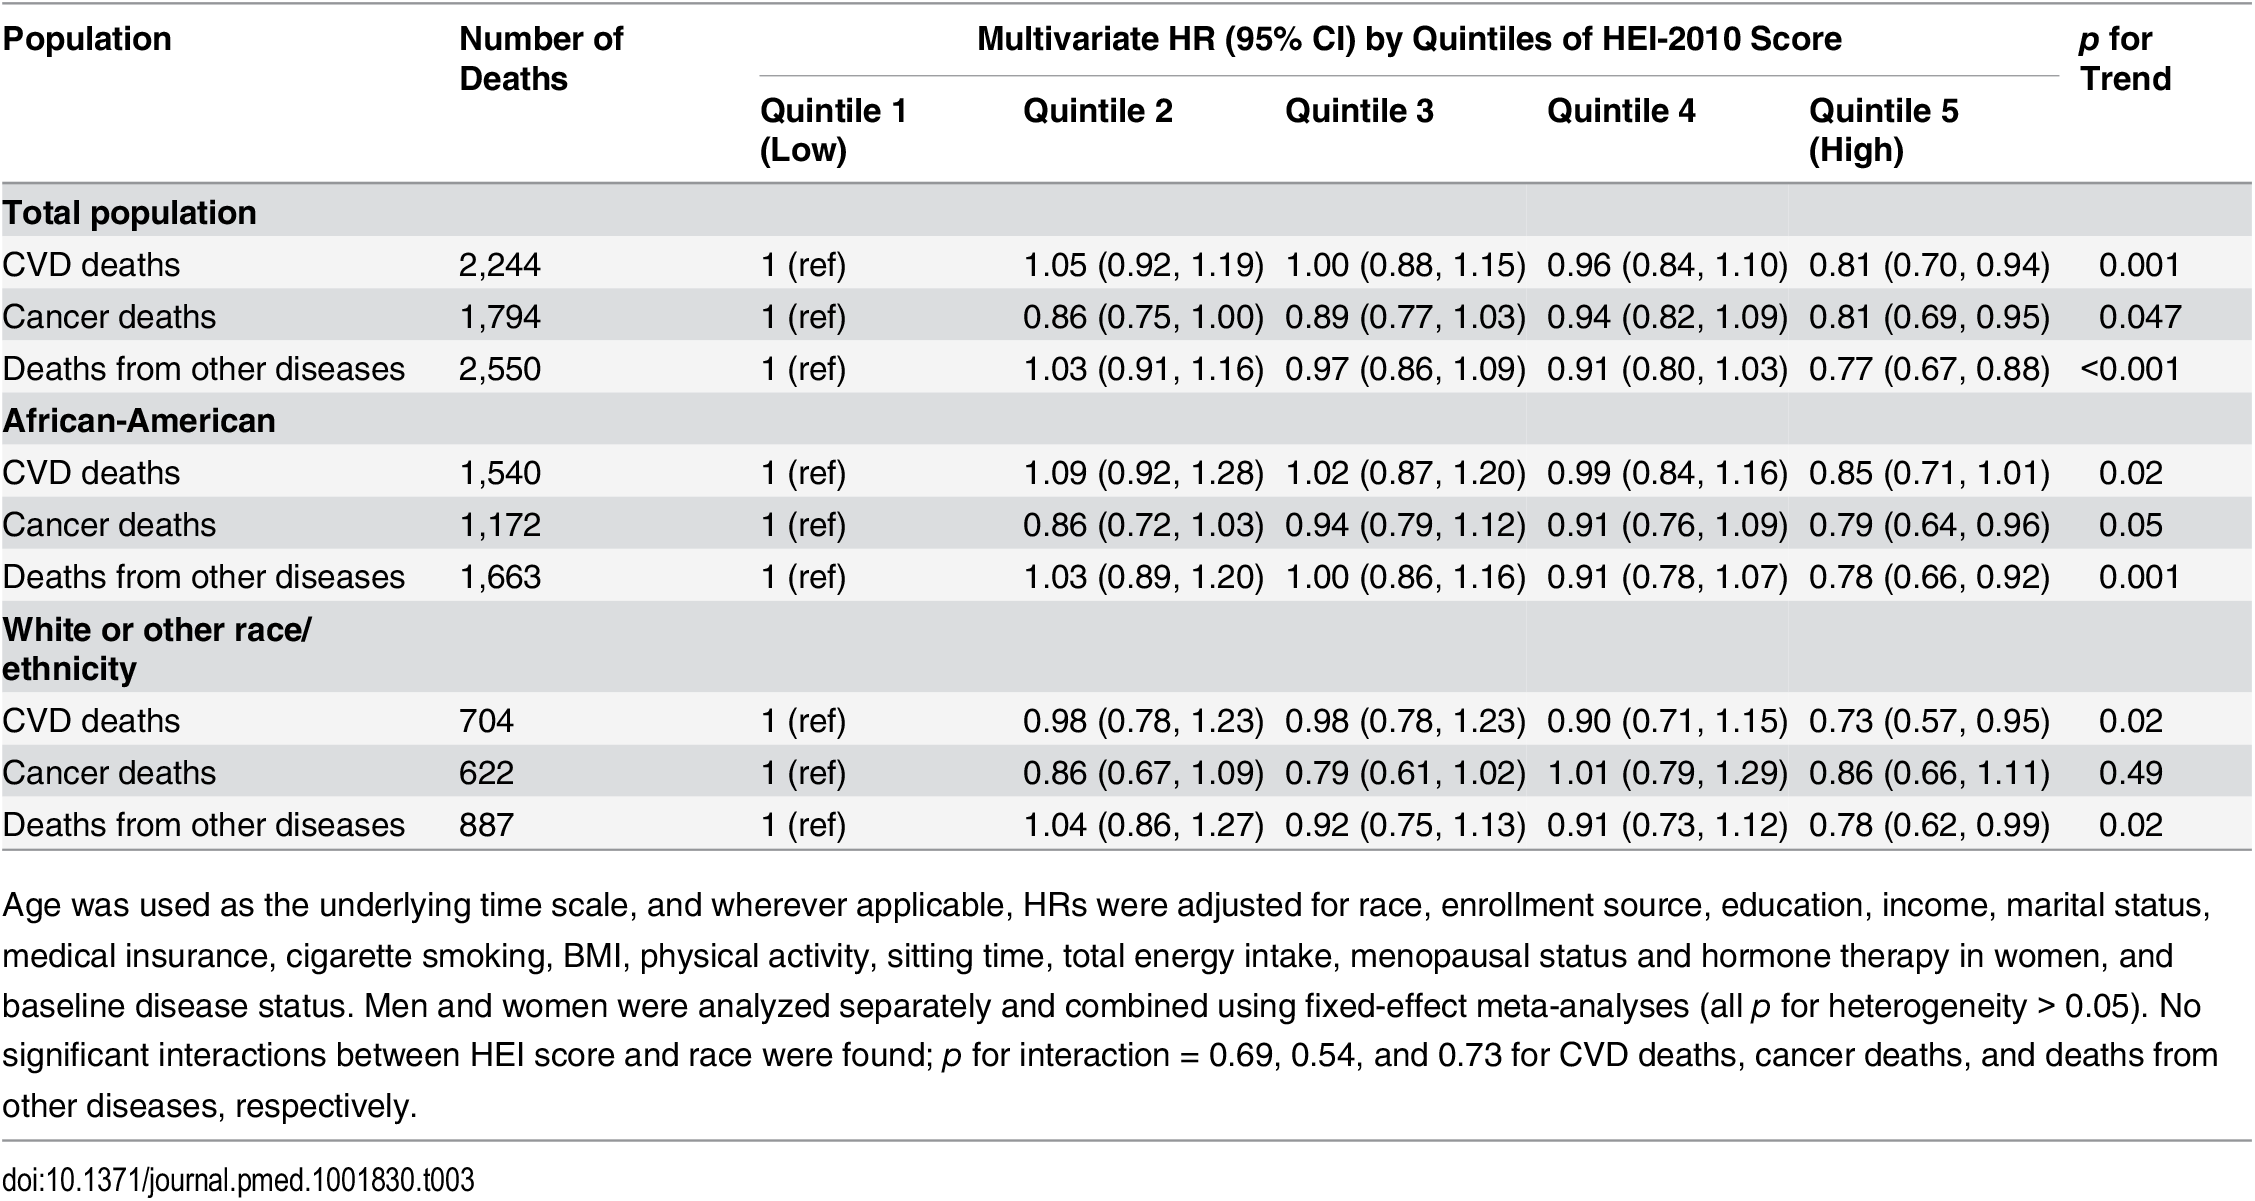 Association of HEI-2010 score and risk of death from cardiovascular disease, cancer, or other diseases in the Southern Community Cohort Study, 2002–2011.